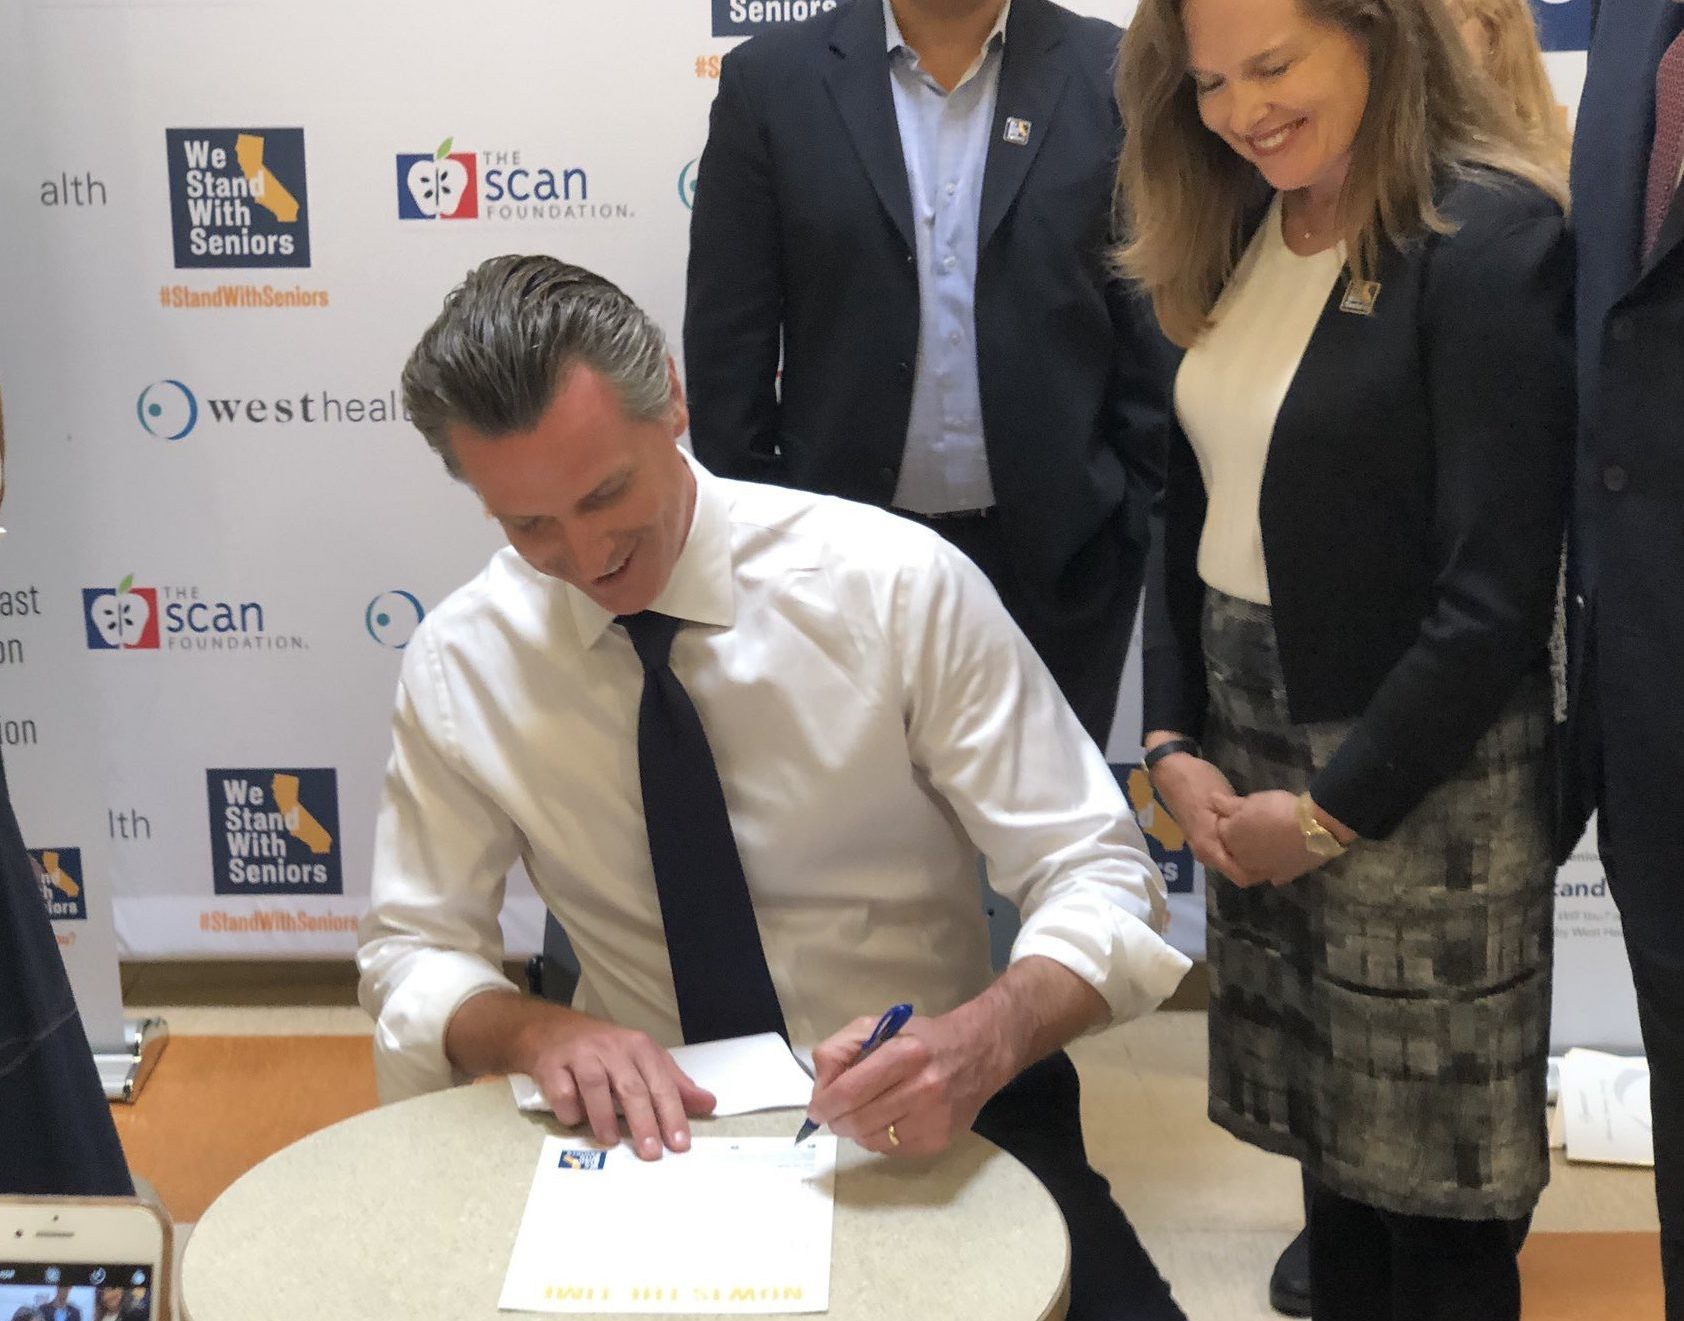 California gubernatorial candidate Gavin Newsom commits to a master plan for aging